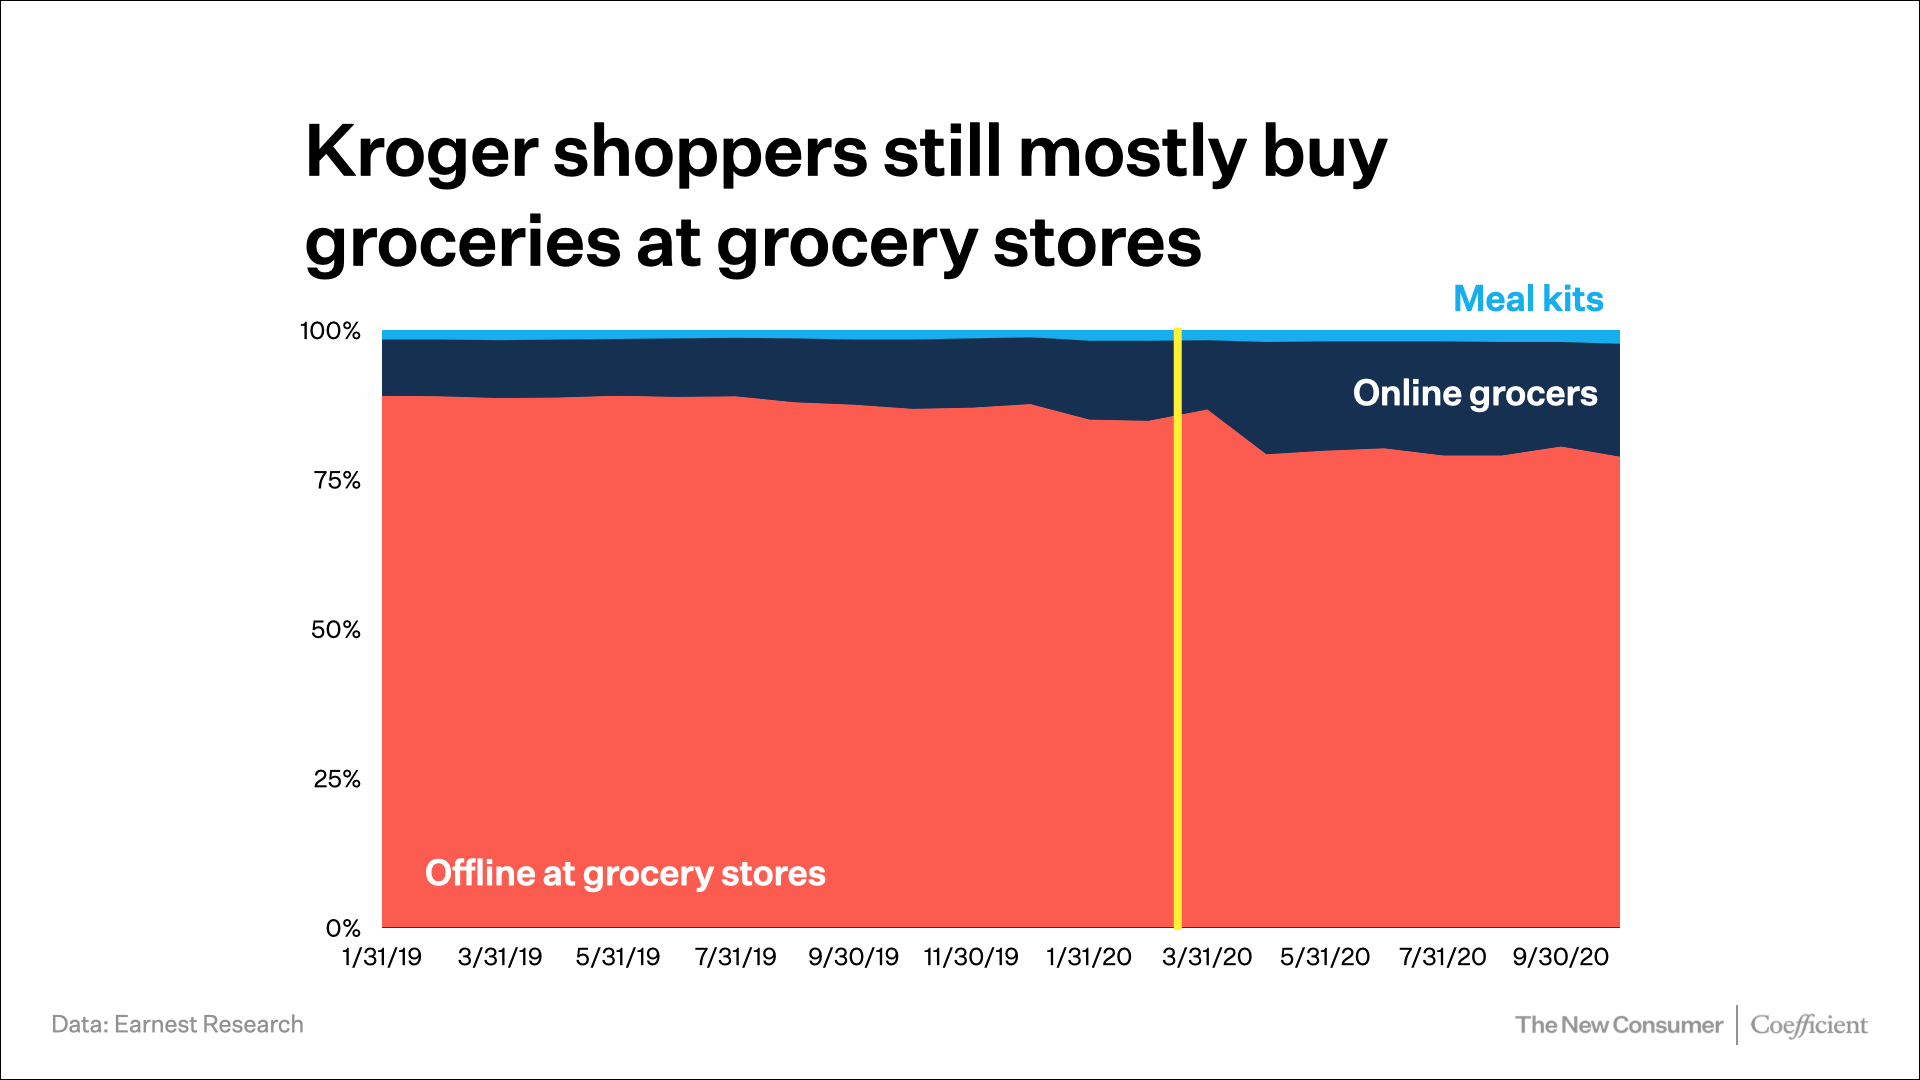 Kroger shoppers still mostly buy groceries at grocery stores